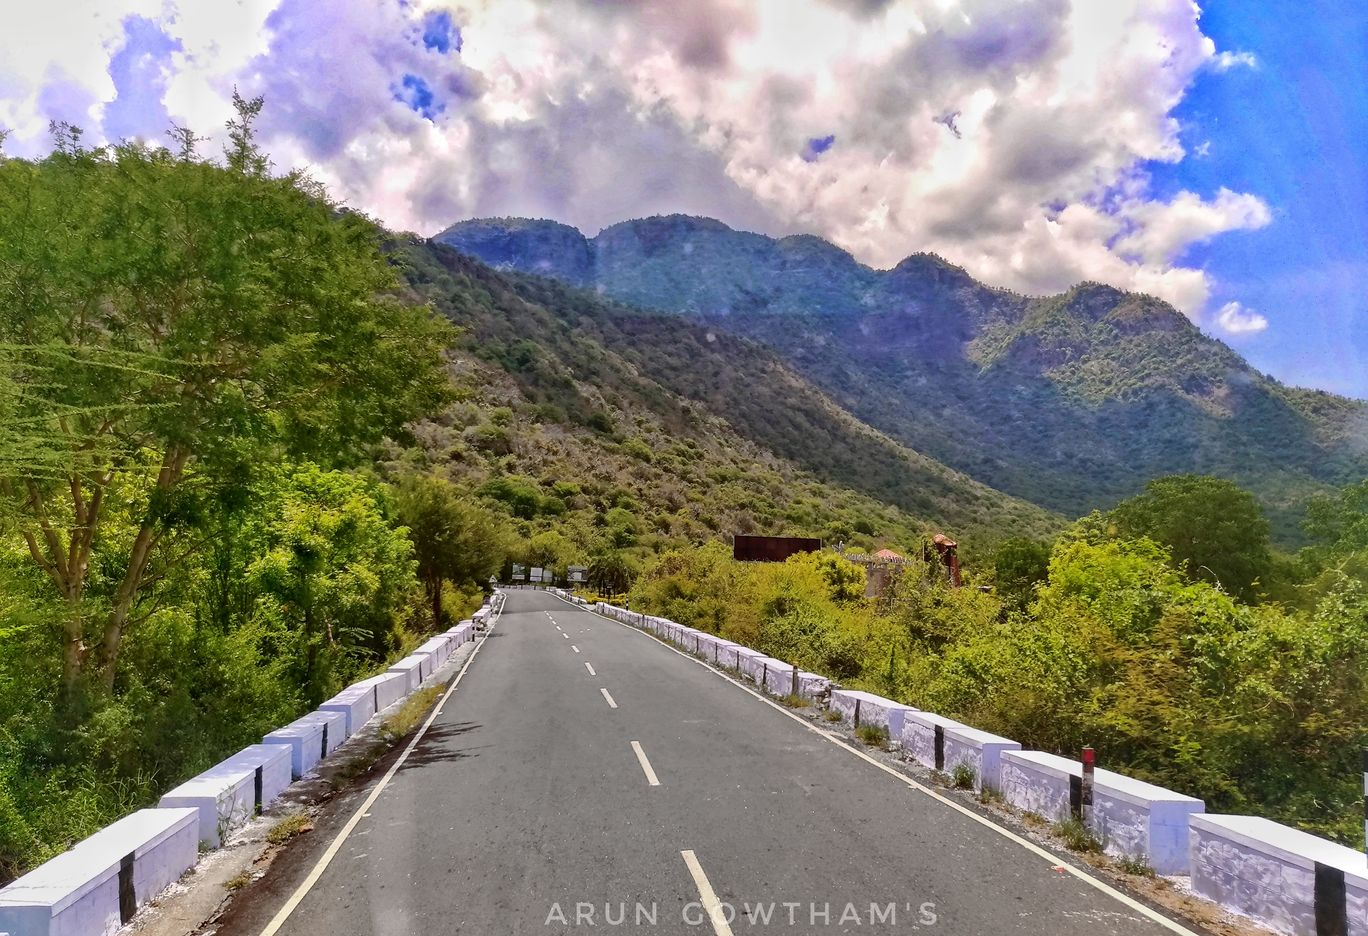 Photo of Kodaikanal By Arun Gowtham